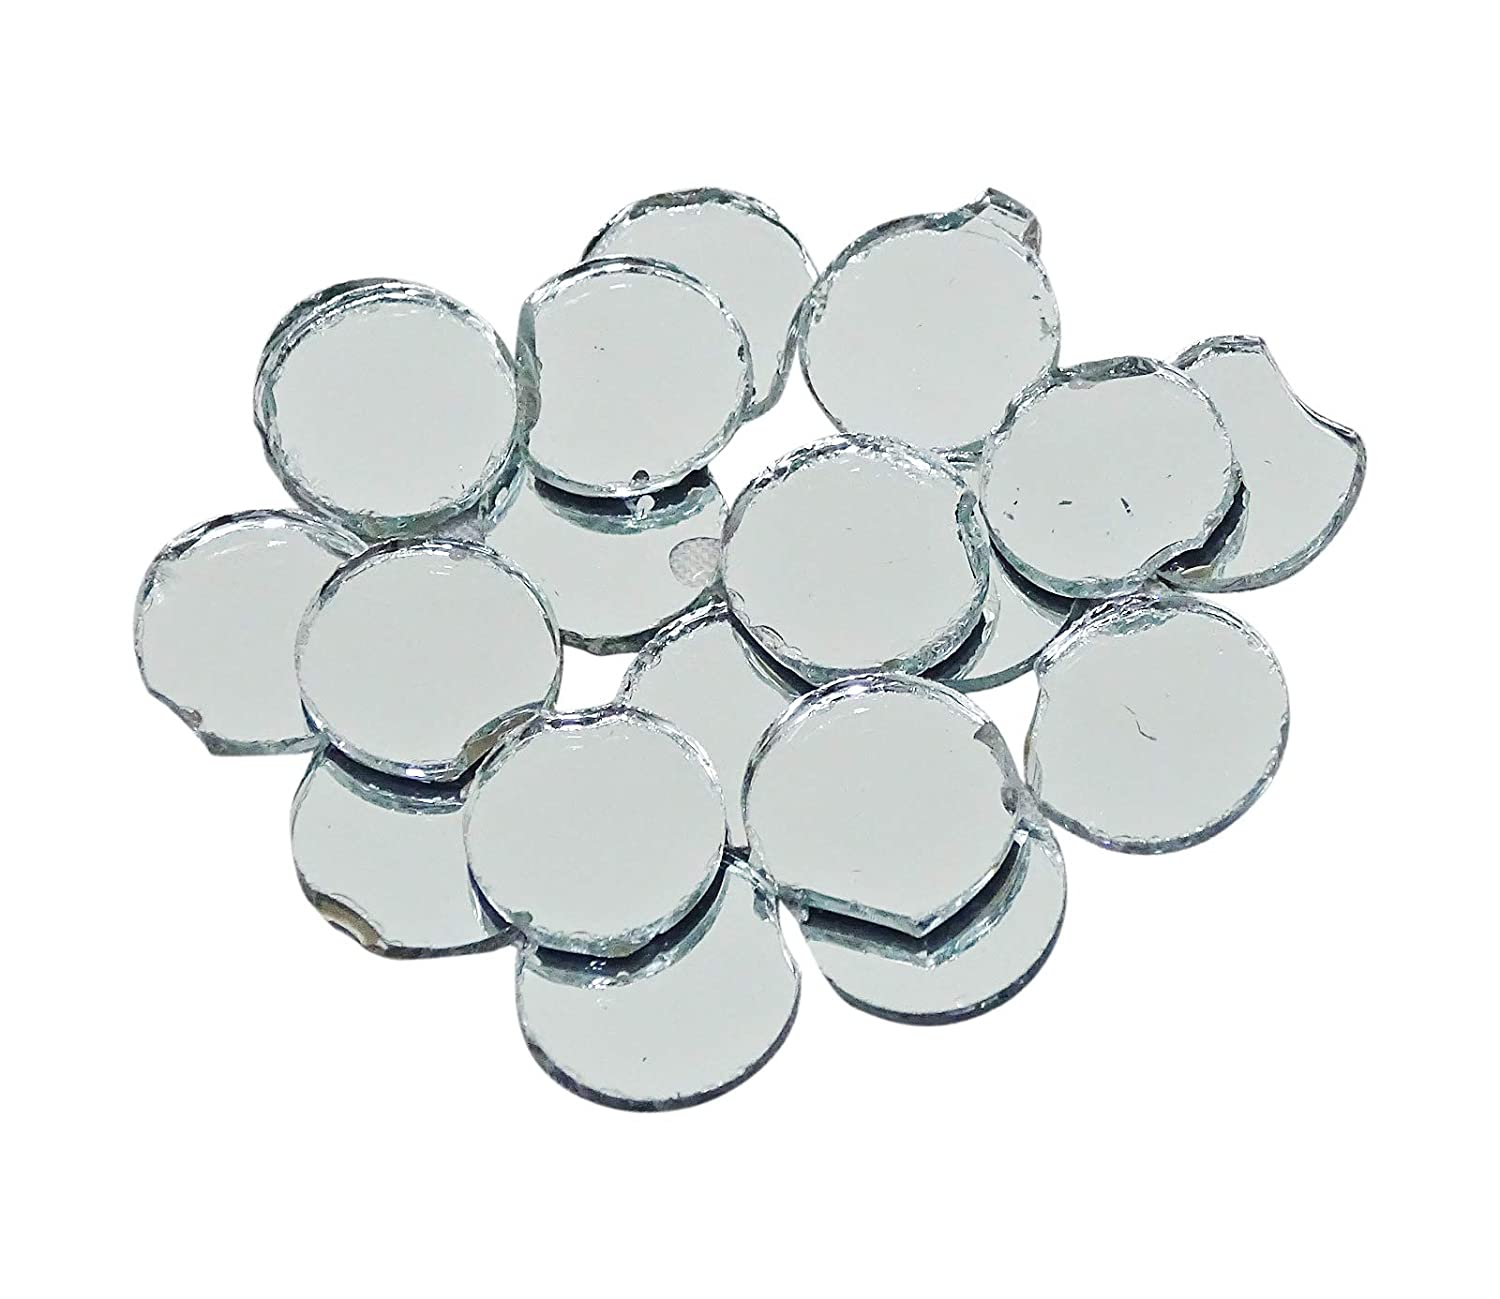 200 Pcs Mini Round Small Glass Mirror Circles for Arts & Crafts Projects, Framing, Decoration Reflecting Mirror PEEGLI MR03